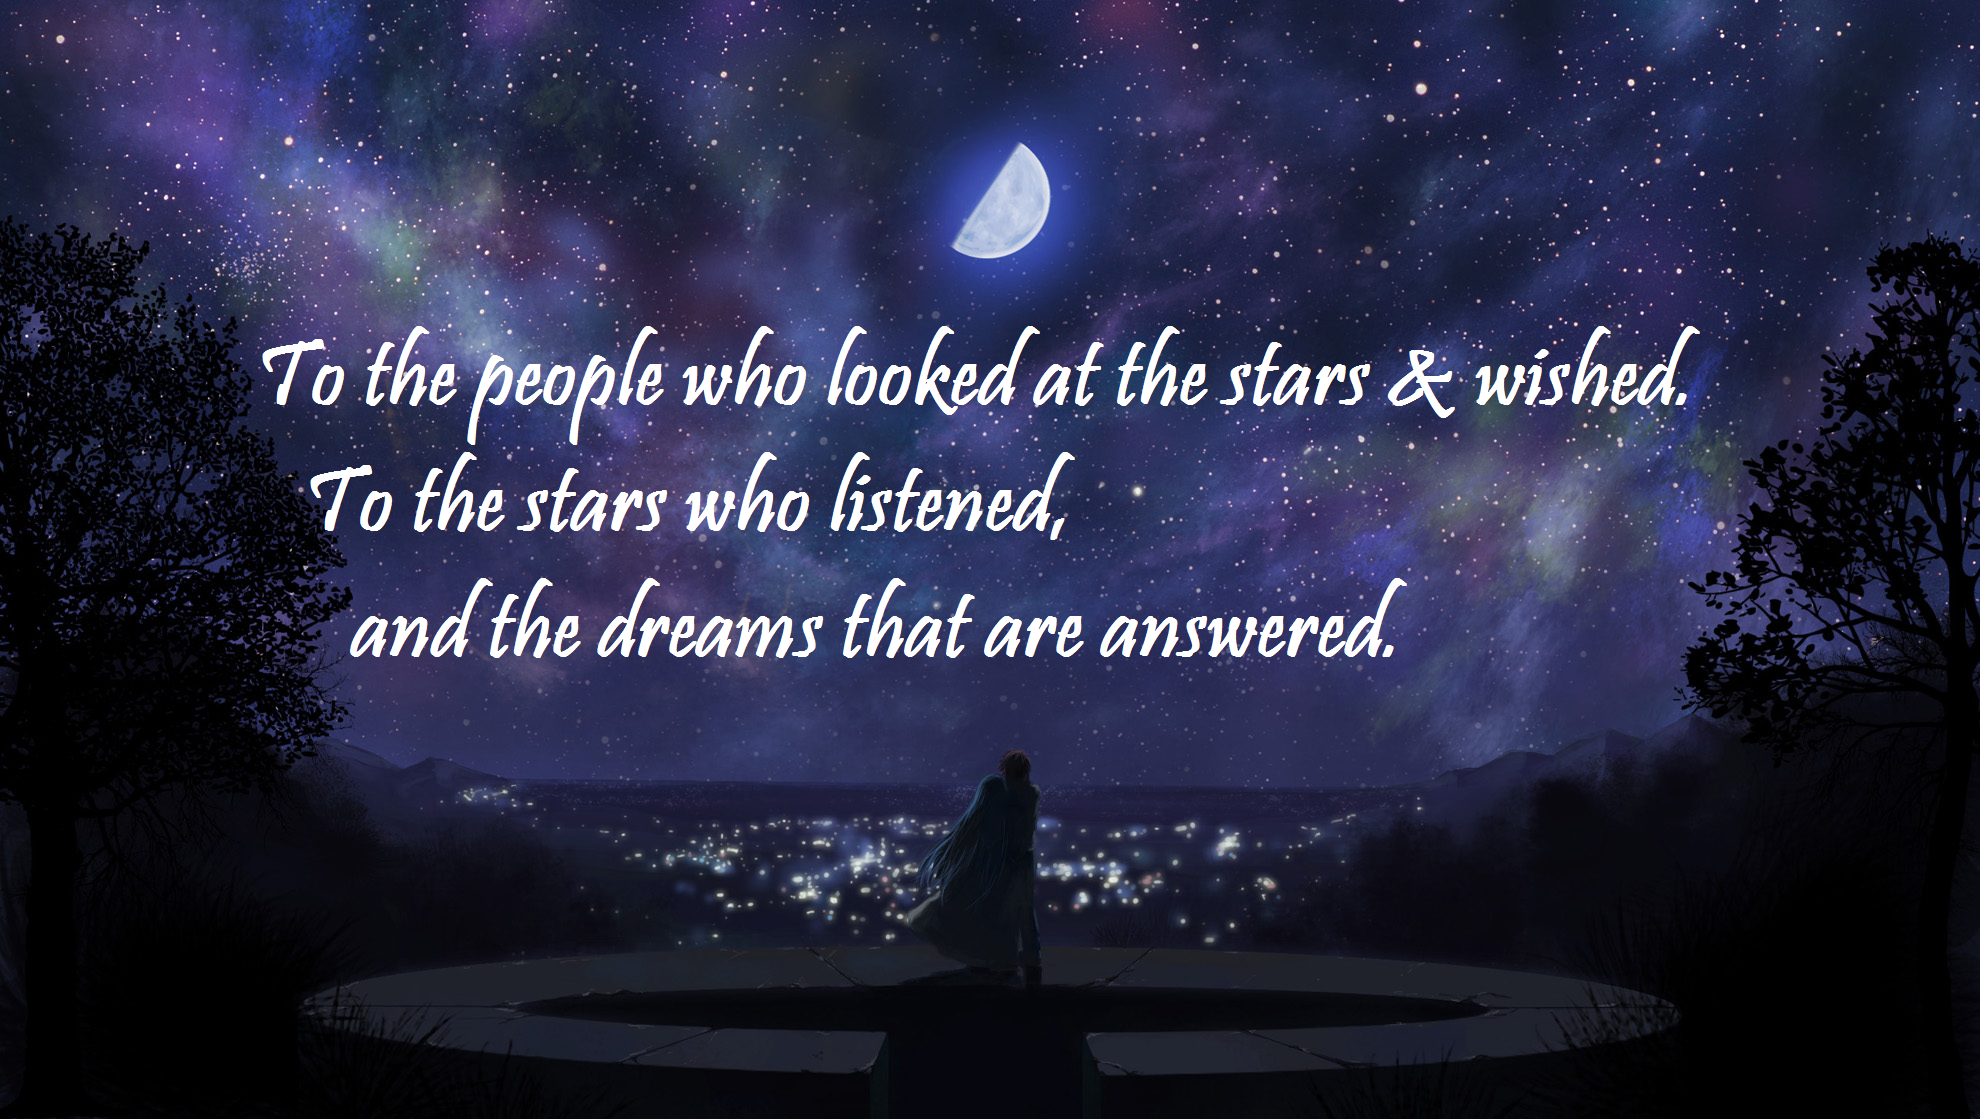 'To the stars who listened, and the dreams that are